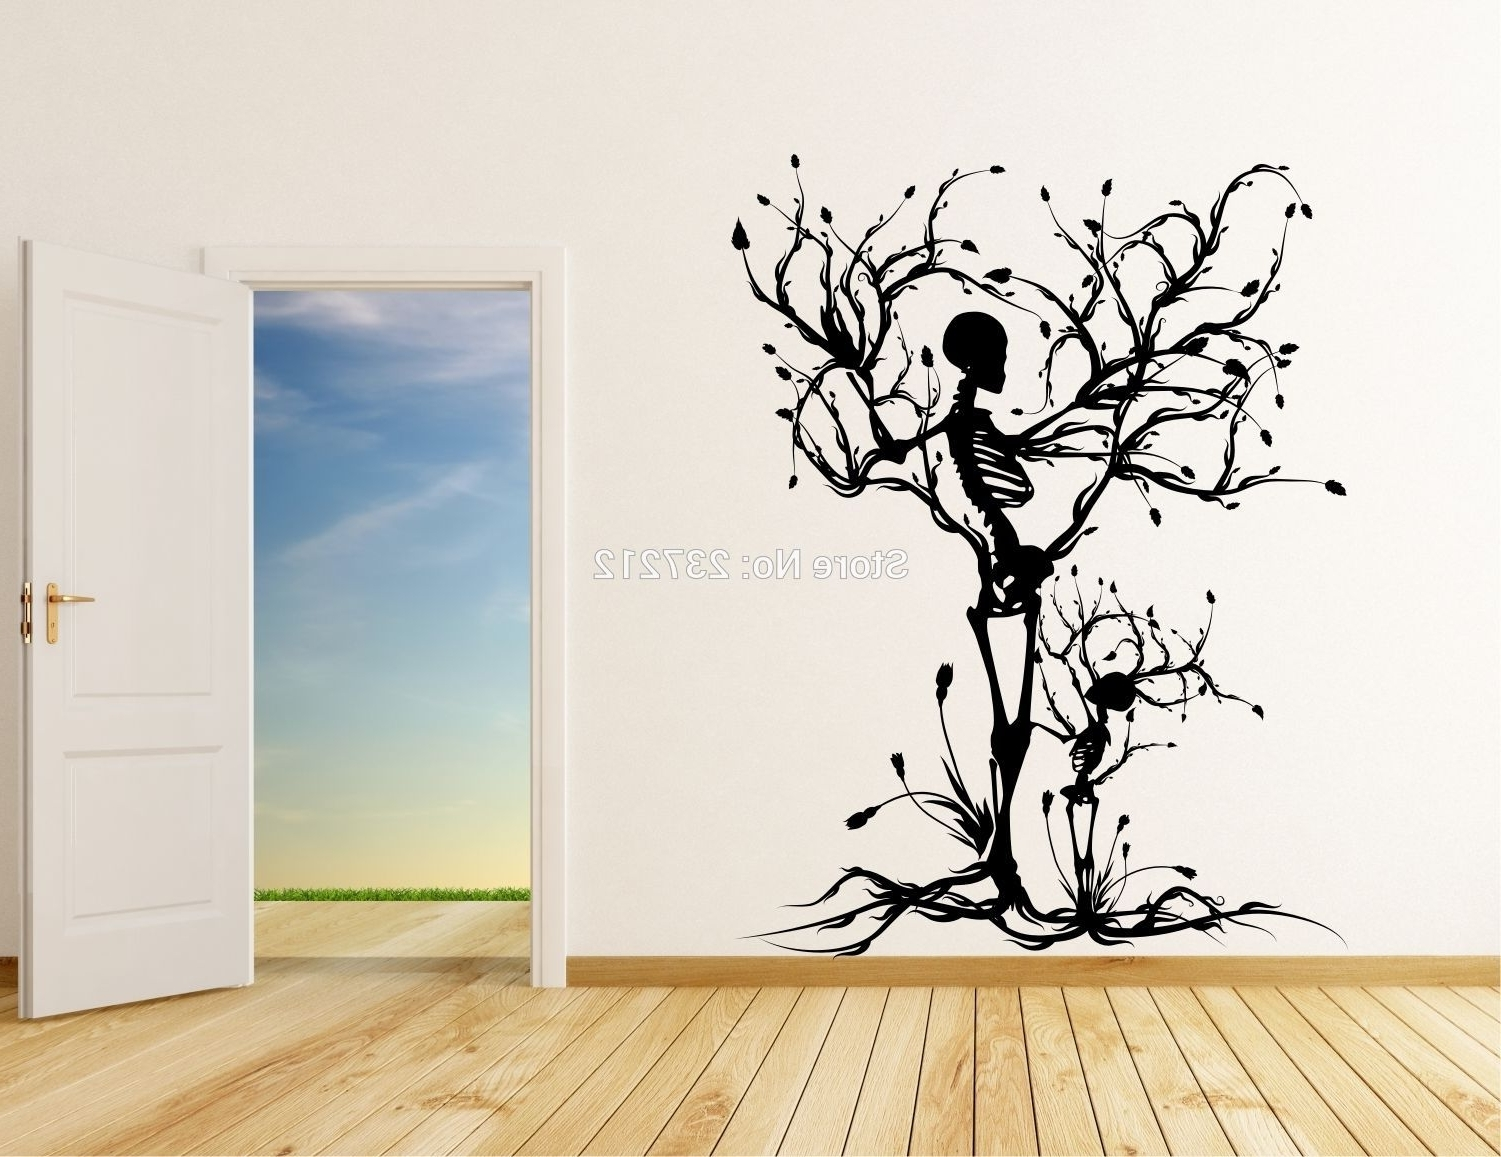 Phobi Home Designs : Decorate Wall Art Decals Ideas With Regard To Art For Walls (View 15 of 20)